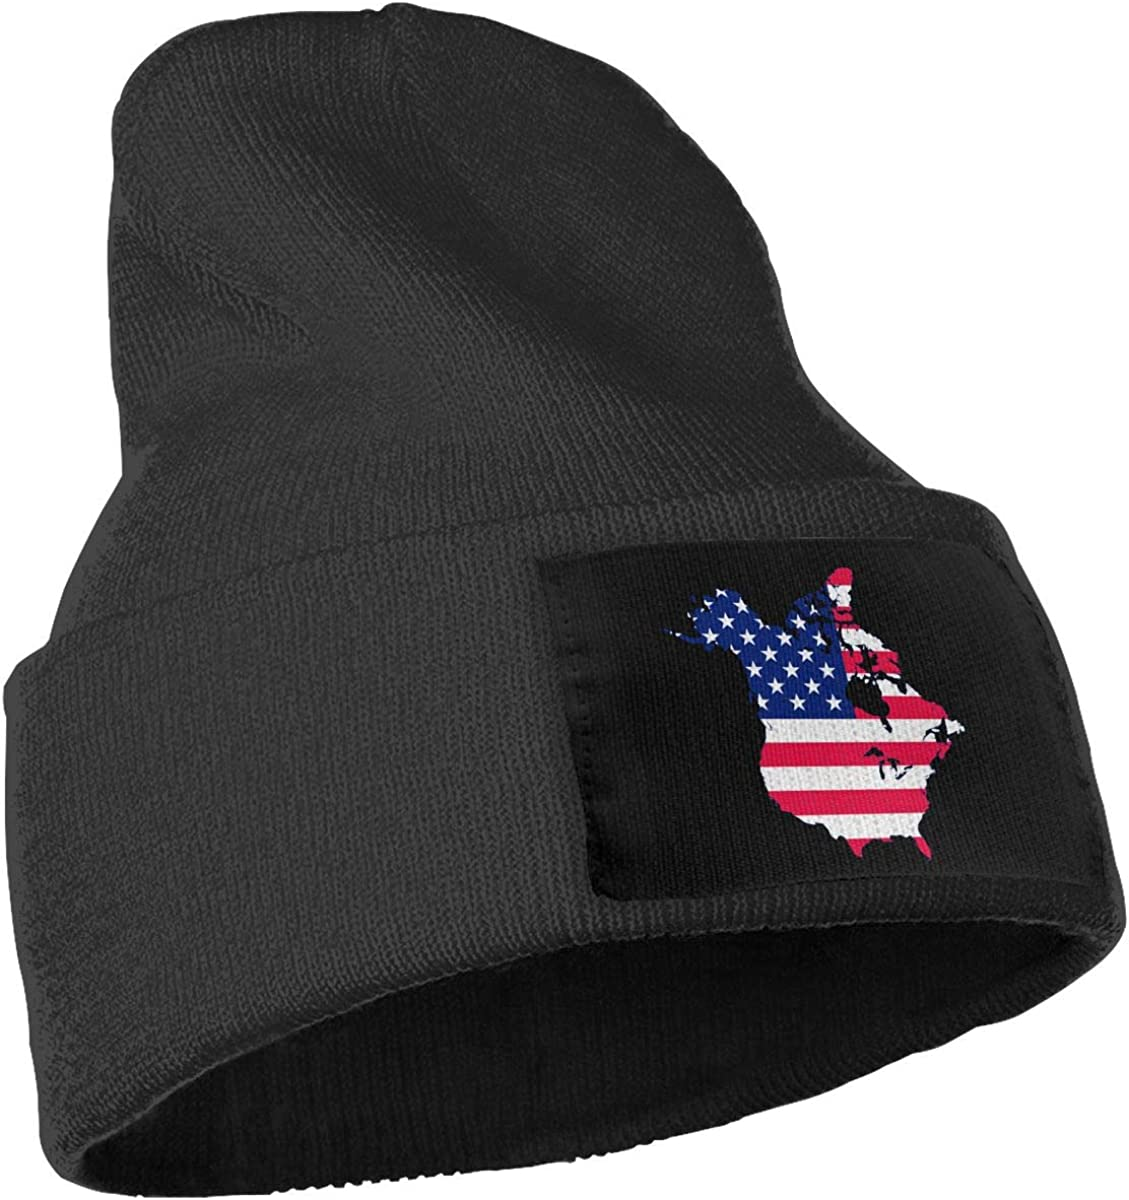 Men /& Women Flag Map of Canada and United States Outdoor Fashion Knit Beanies Hat Soft Winter Skull Caps